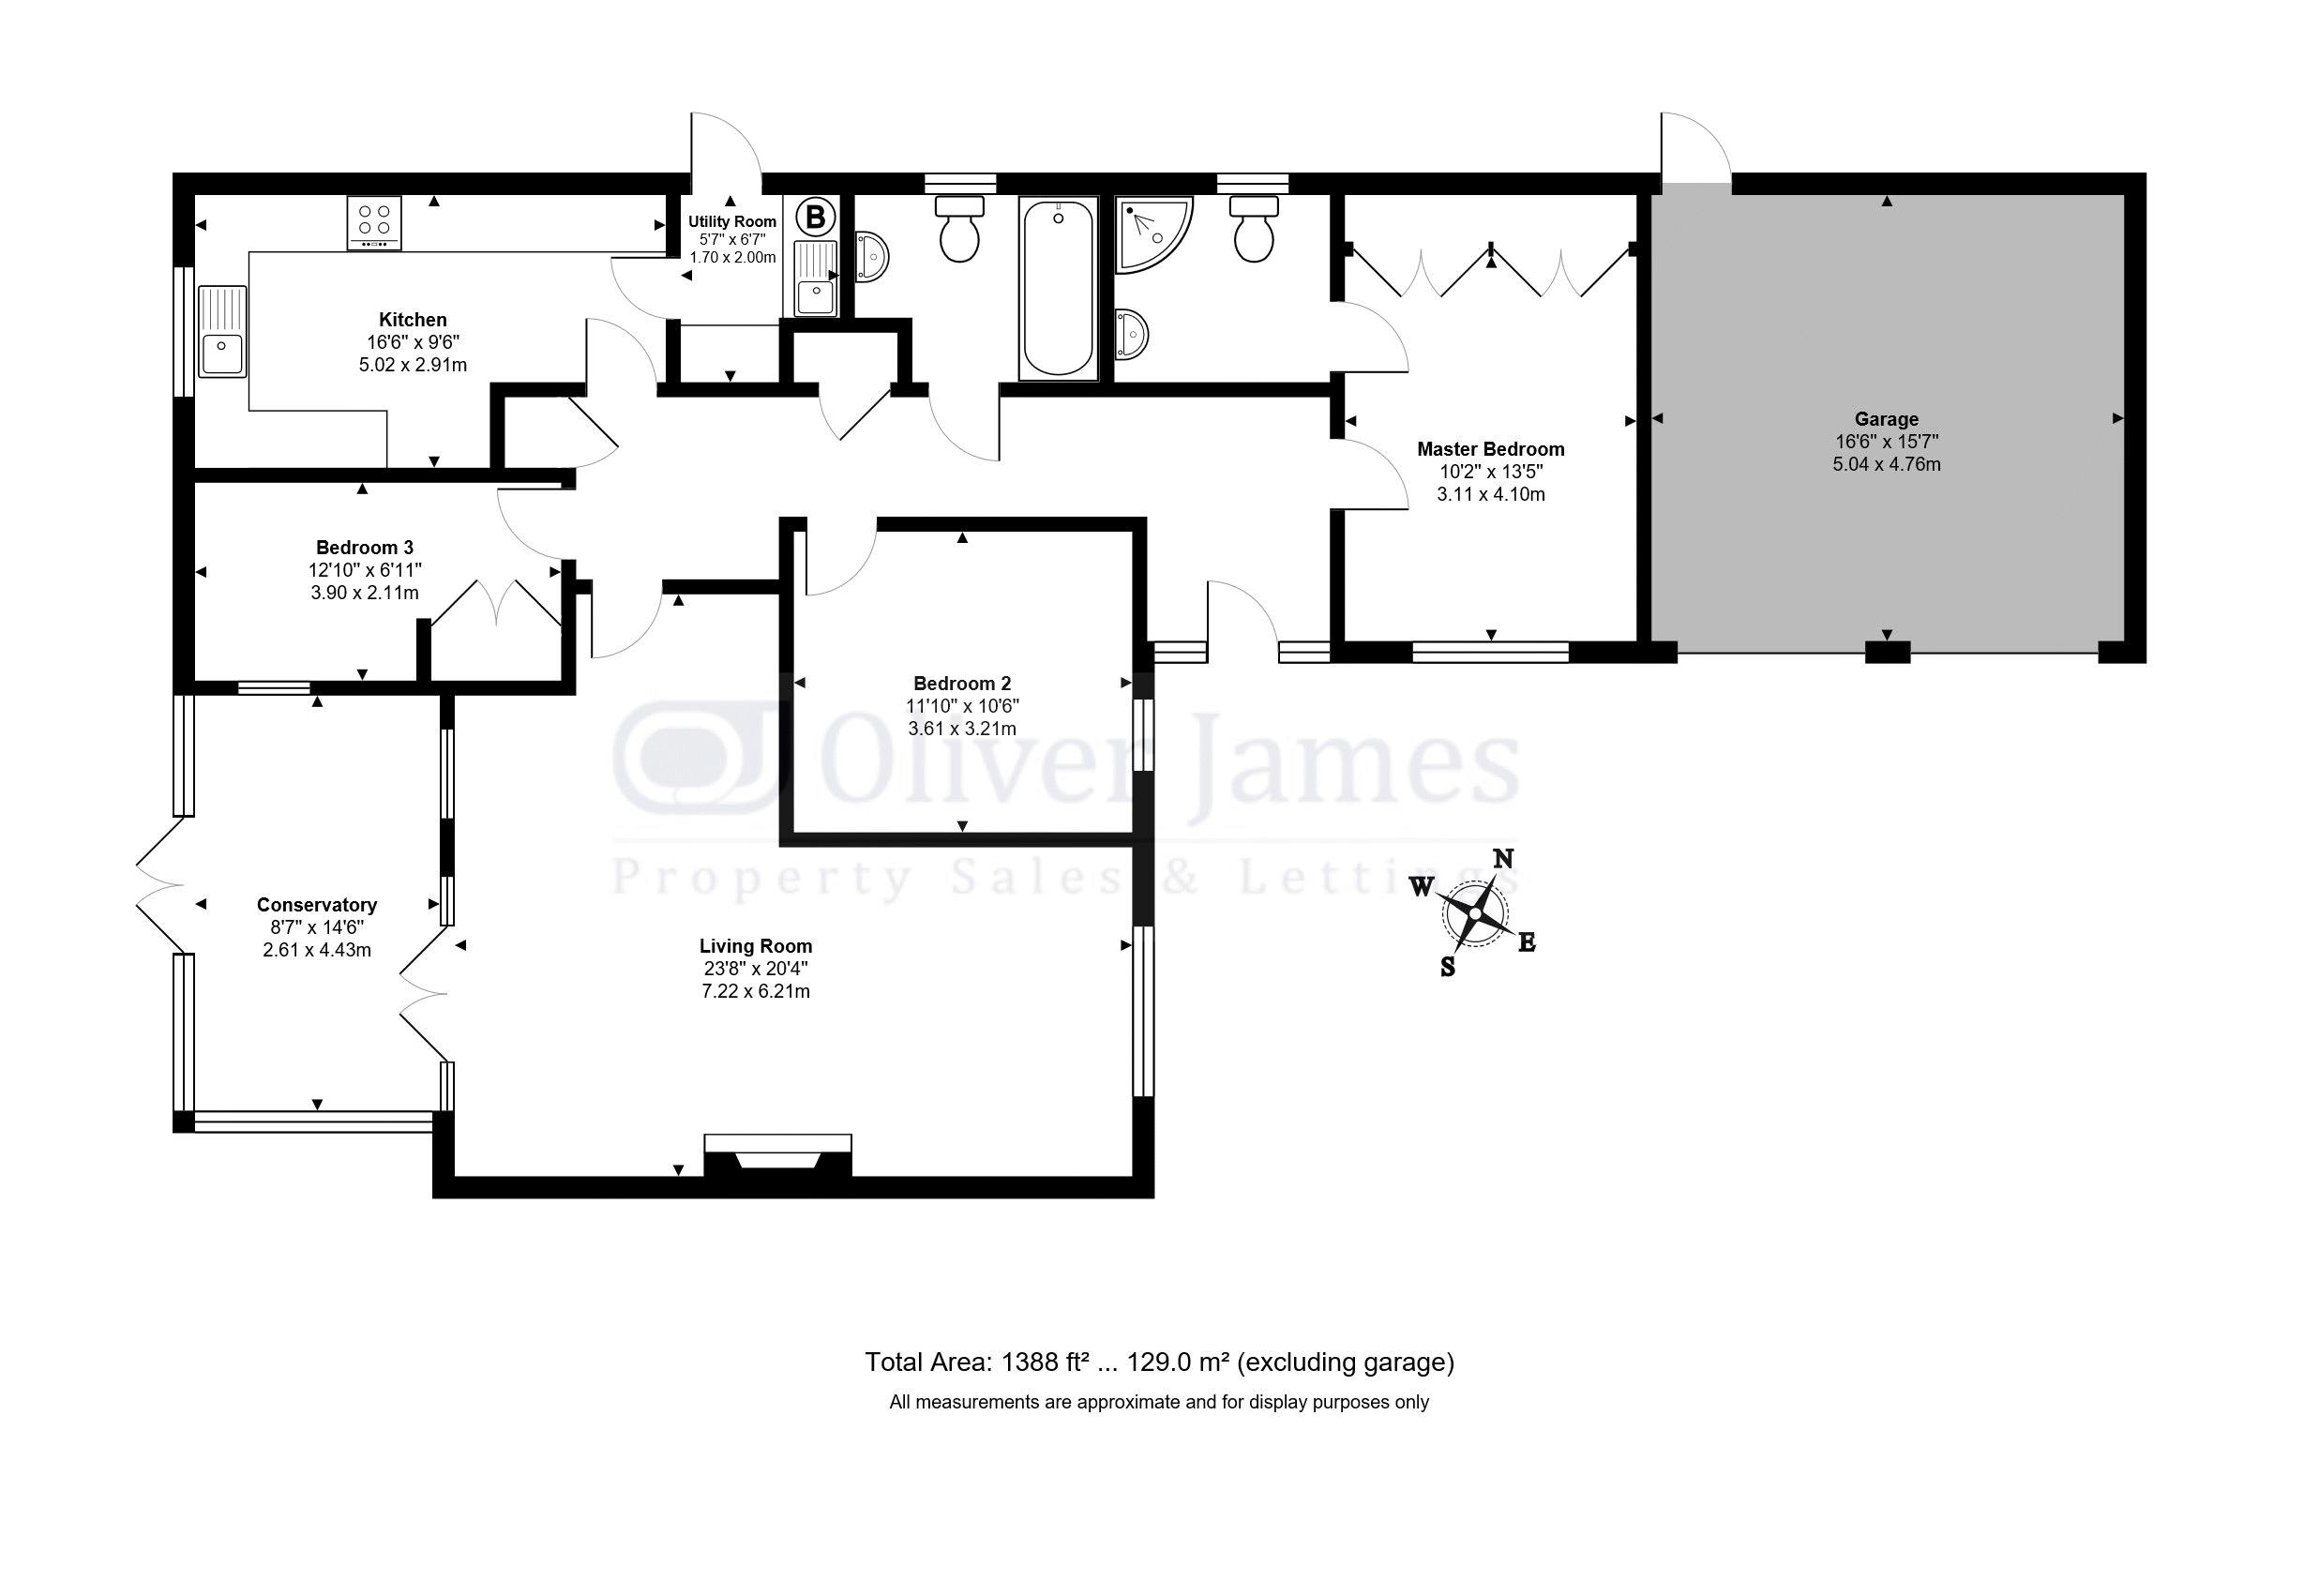 3 Bedroom Detached House For Sale In Huntingdon Schematic Diagram X2 02 Floorplan